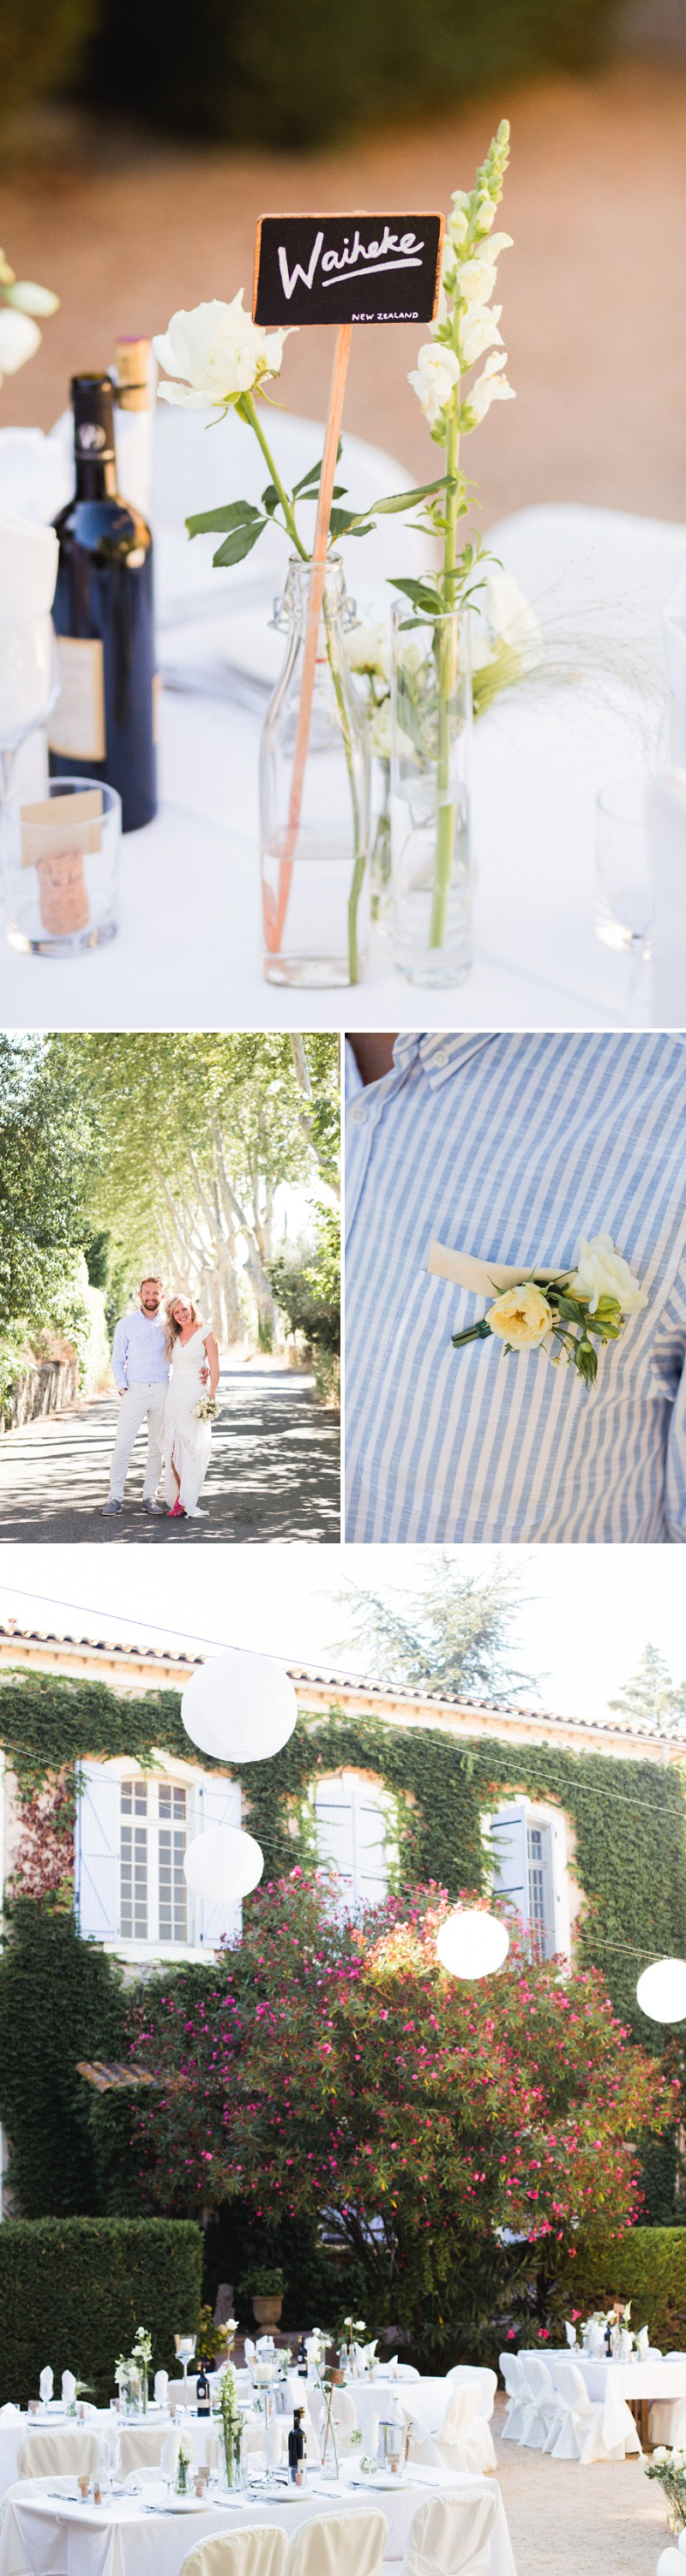 A Beautiful Destination Wedding at Chateau du Puits es Pratx in France With A Handmade Bohemian Wedding Dress And White Colour Scheme By M&J Photography._006a